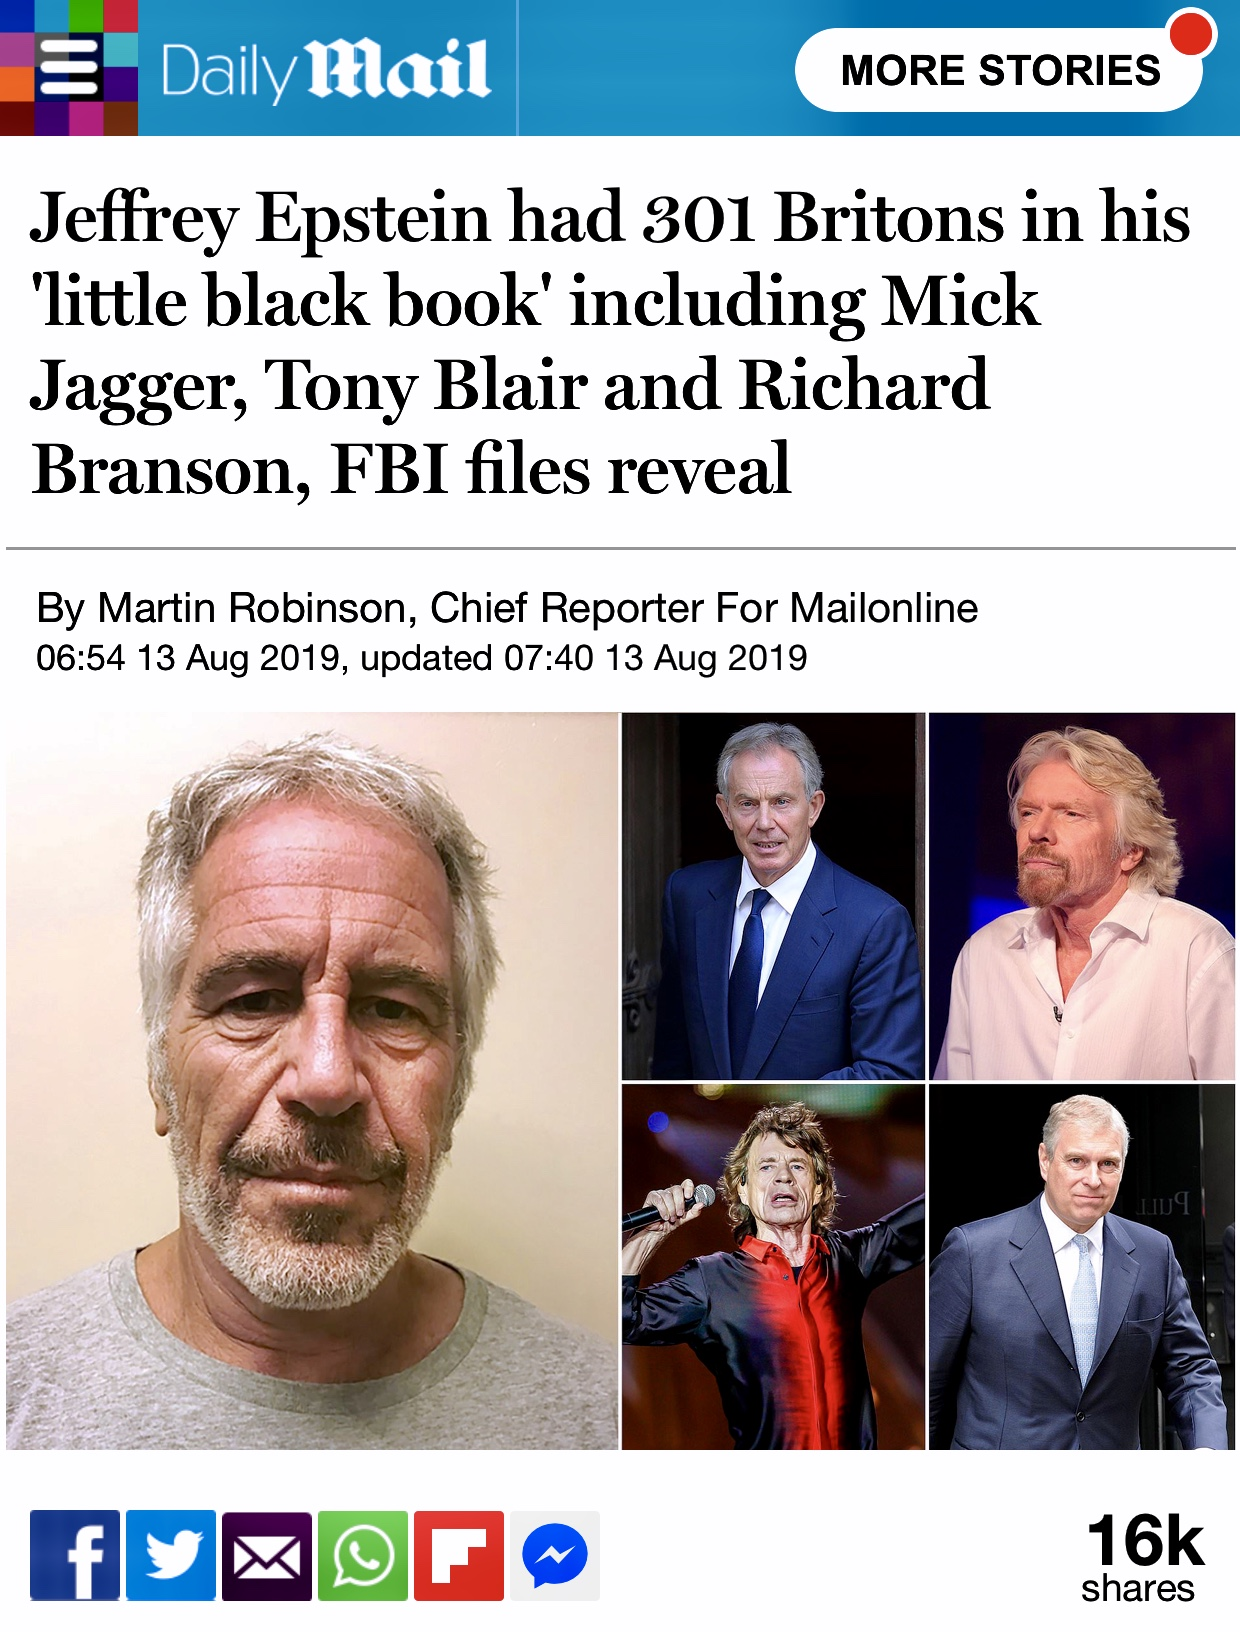 Jeffrey Epstein had 301 Britons in his 'little black book' including Jagger, Blair and Branson